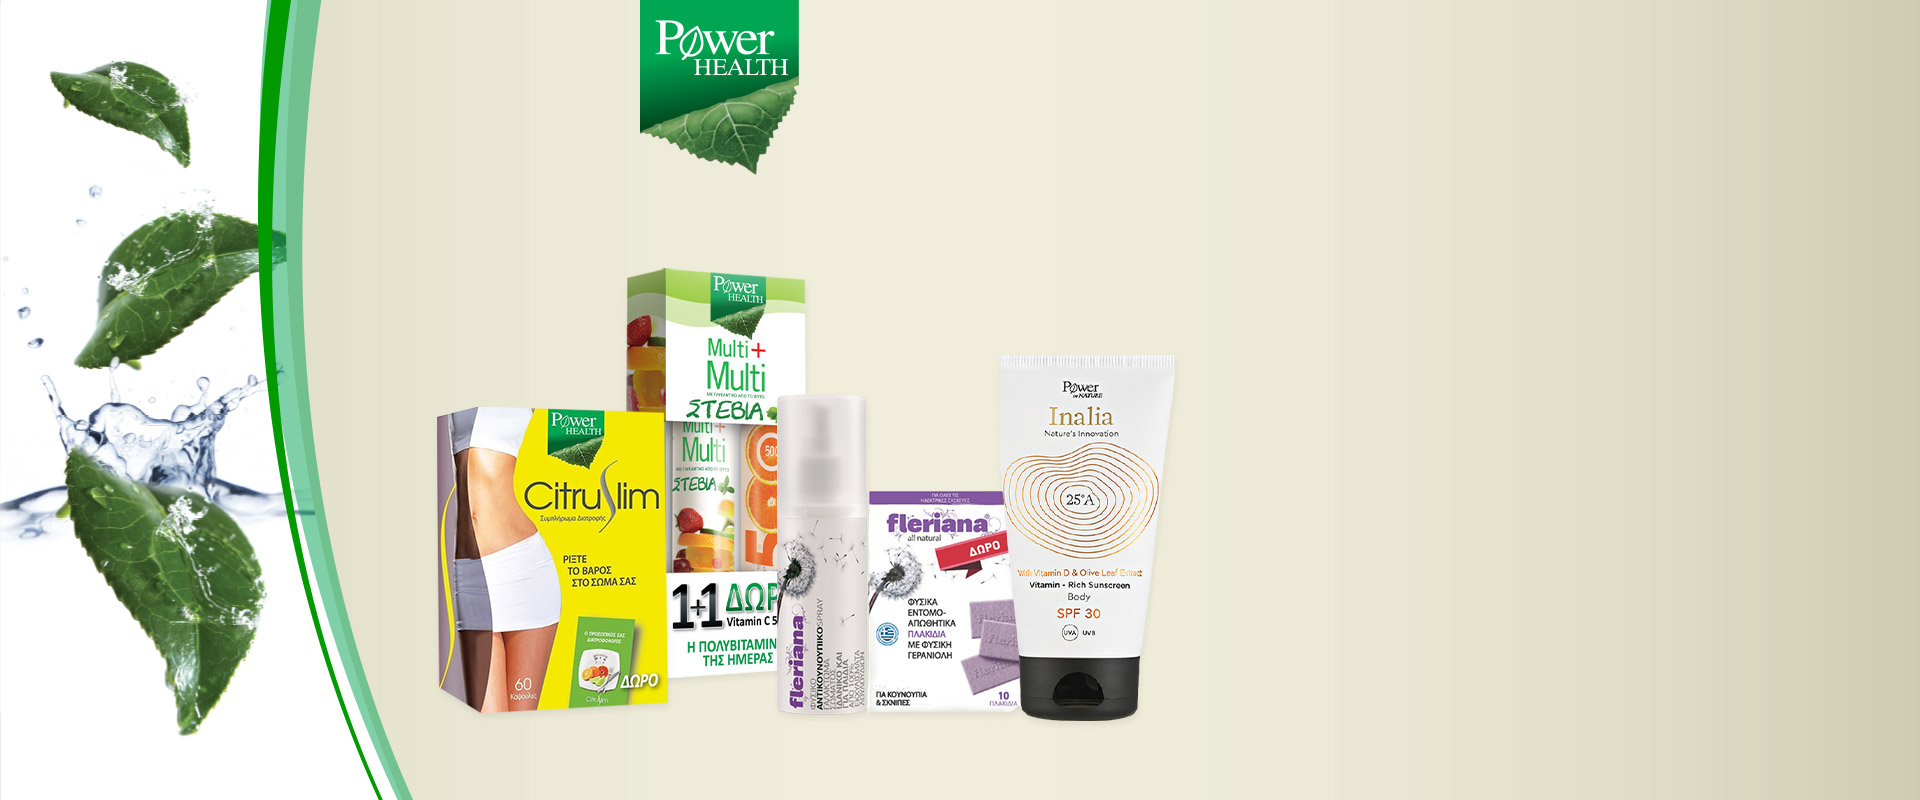 POWER HEALTH UP TO -55%